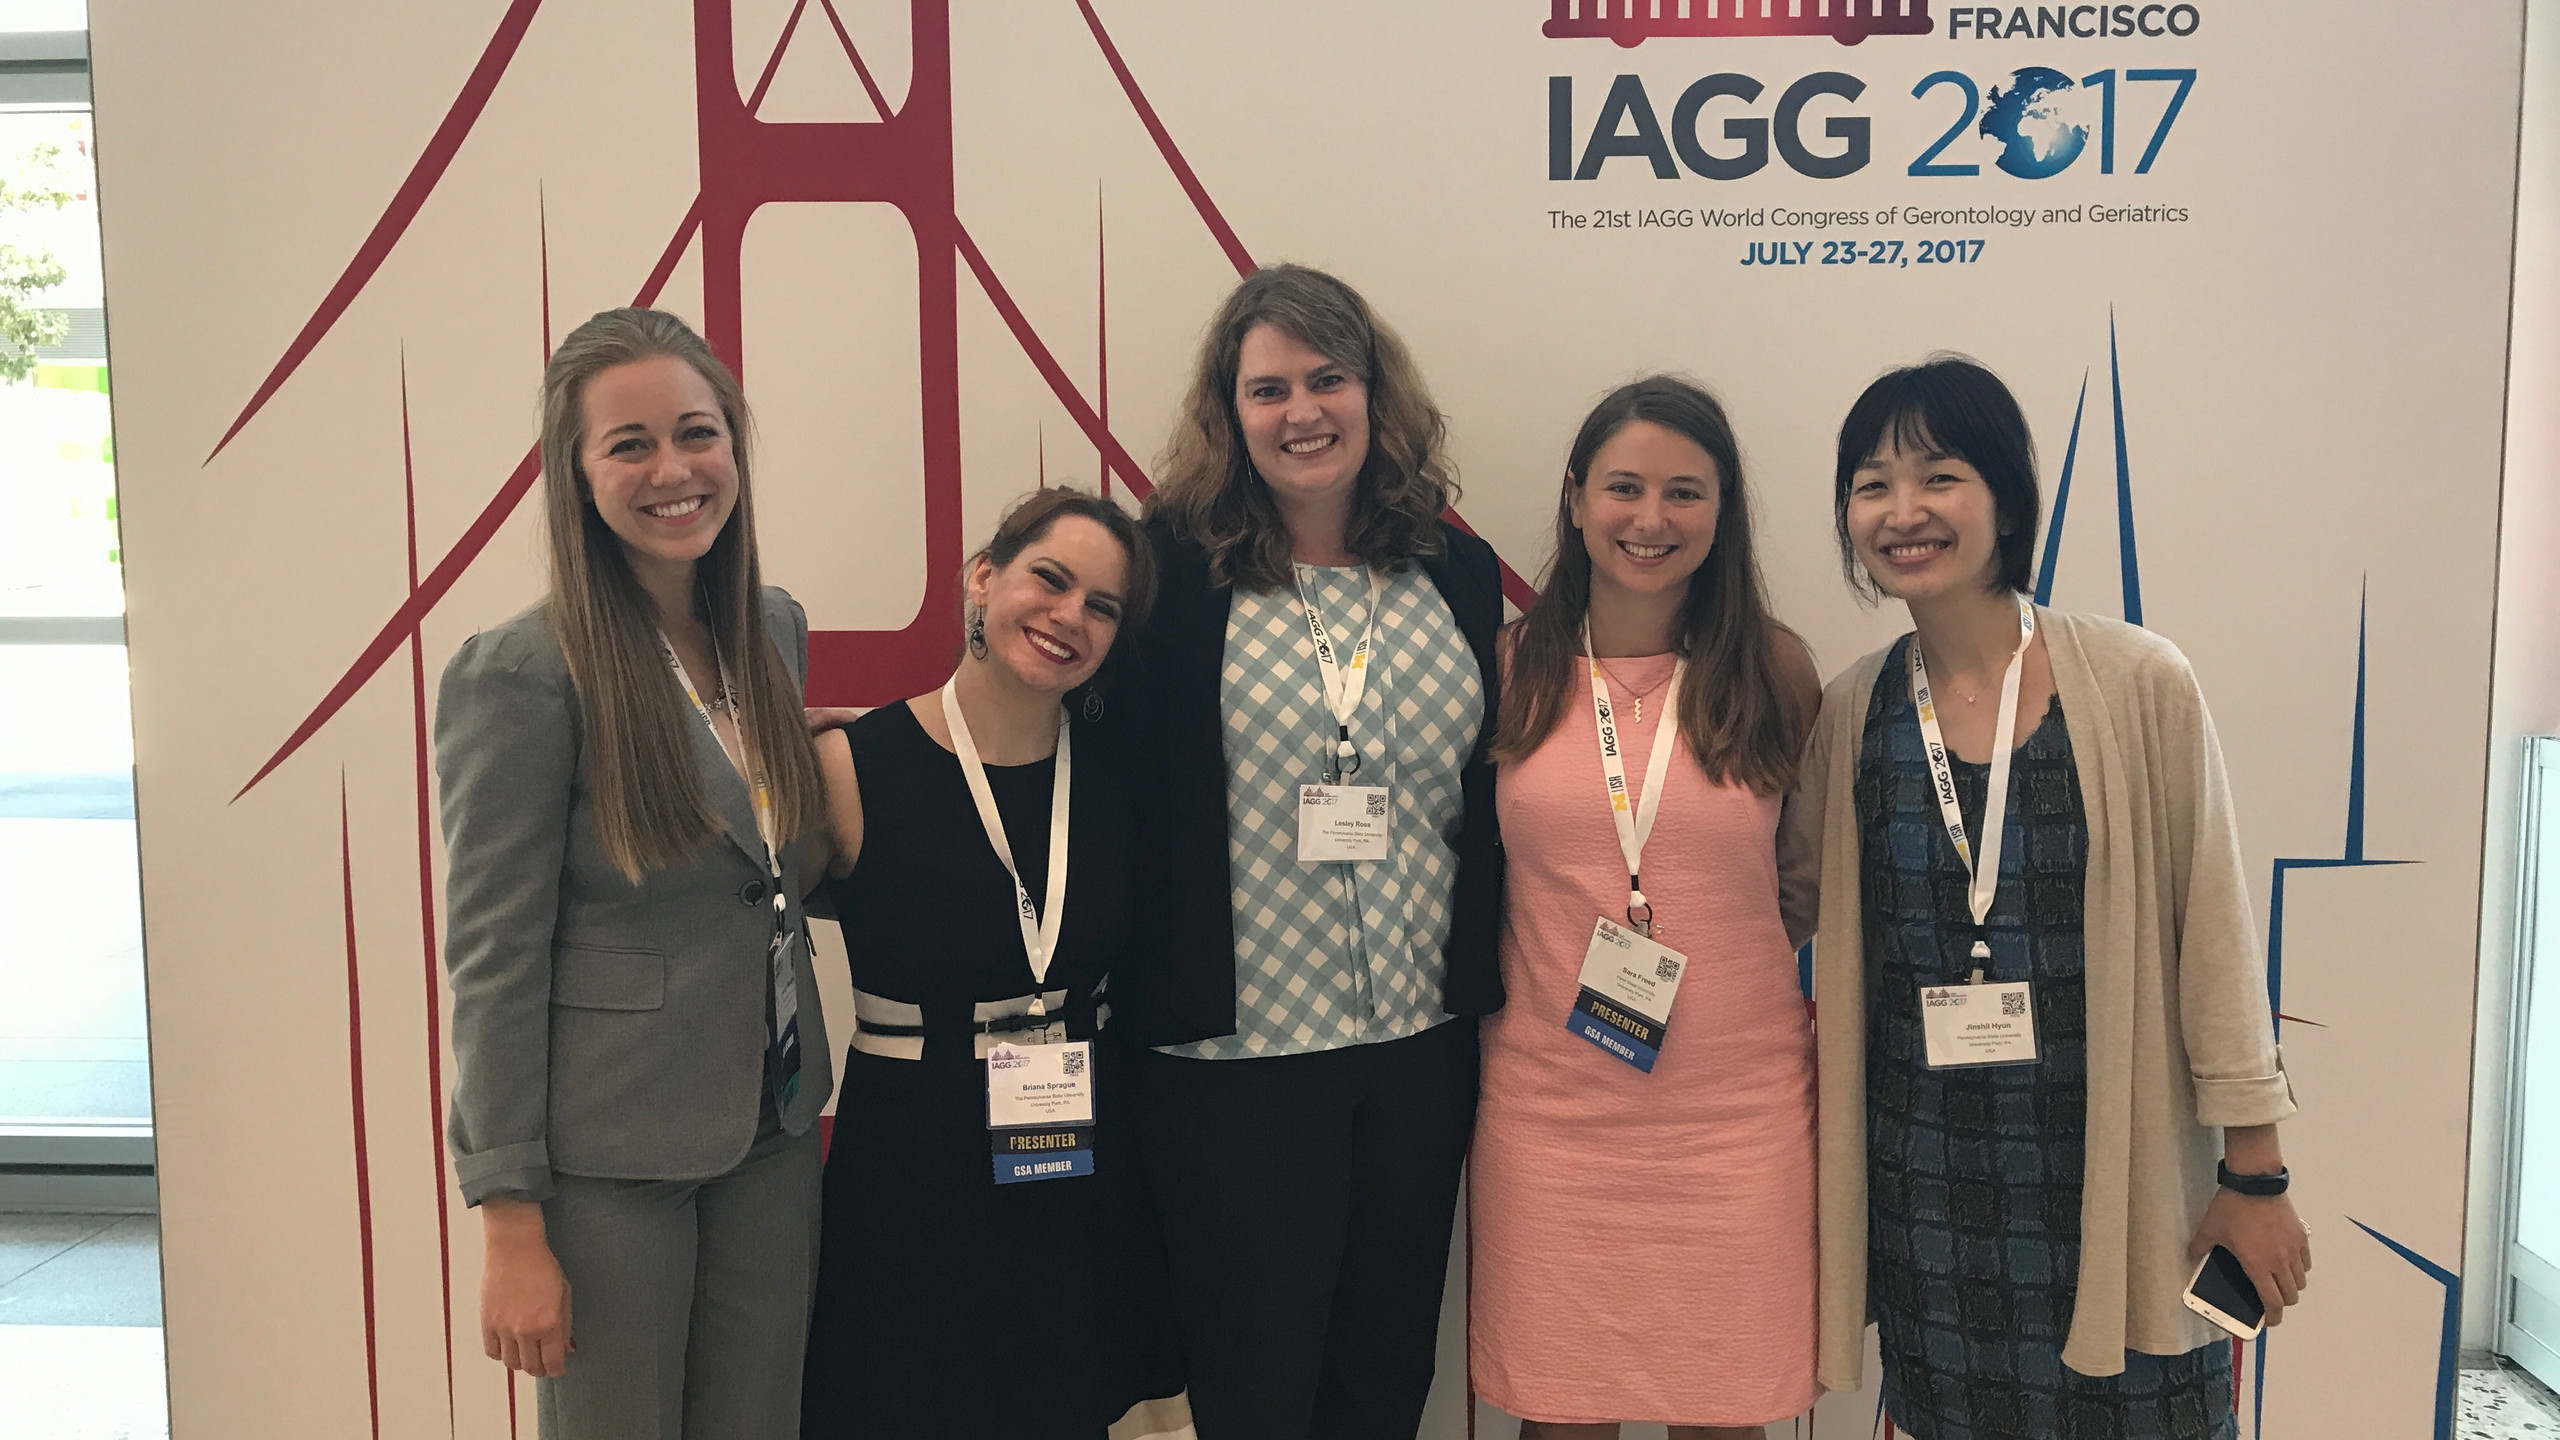 IAGG 2017 Conference